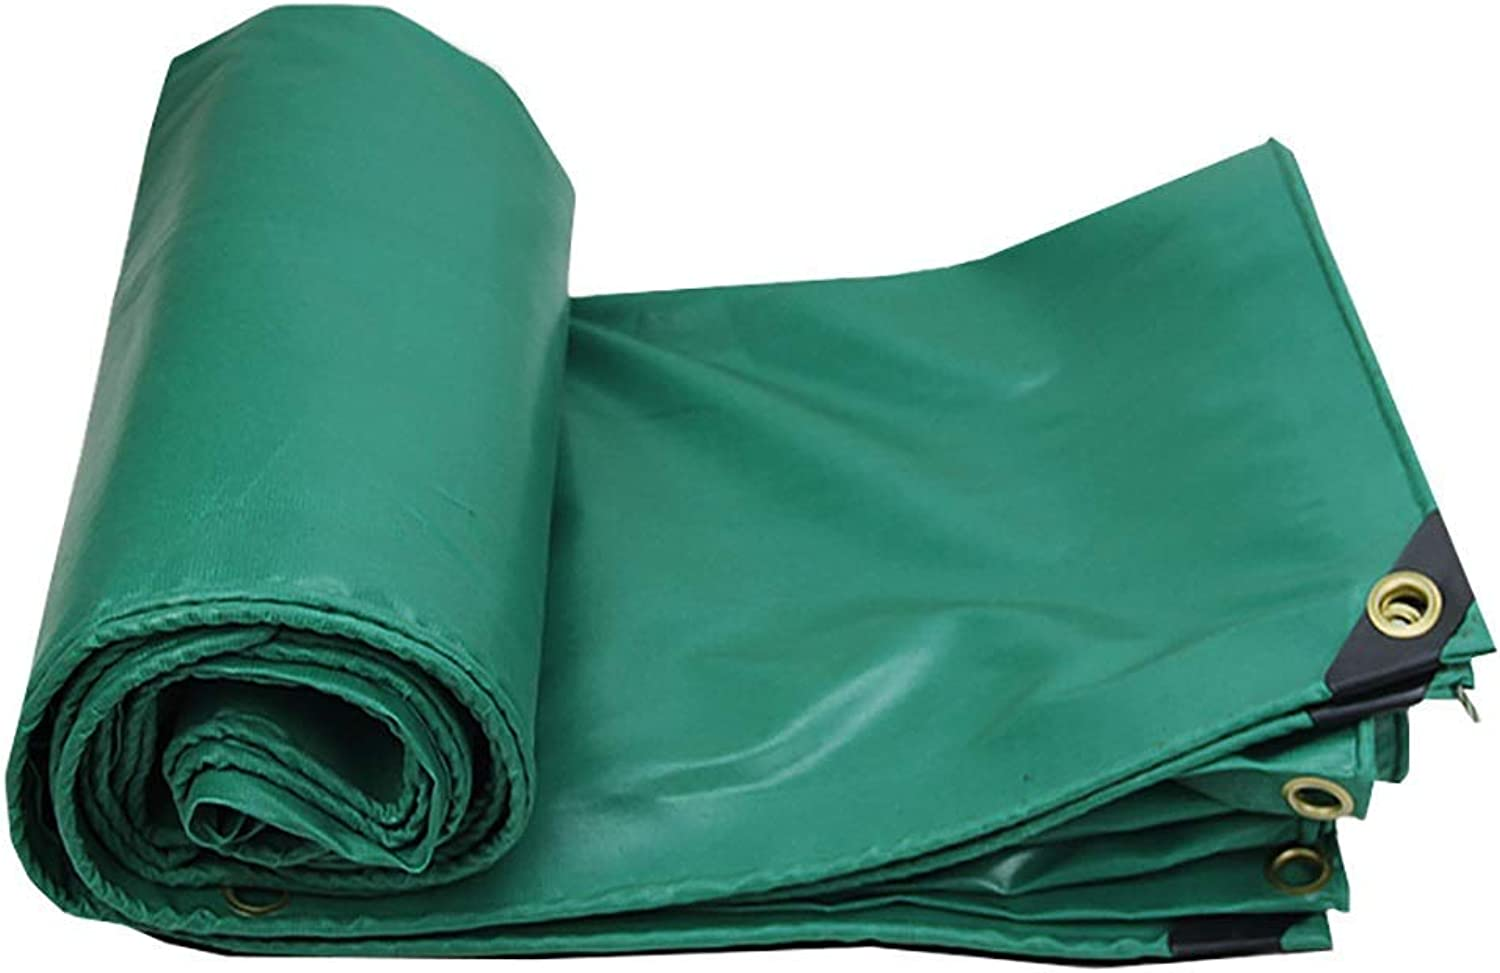 Kineede Heavy Duty Tarps Polyester Outdoor Truck, 450g  m2